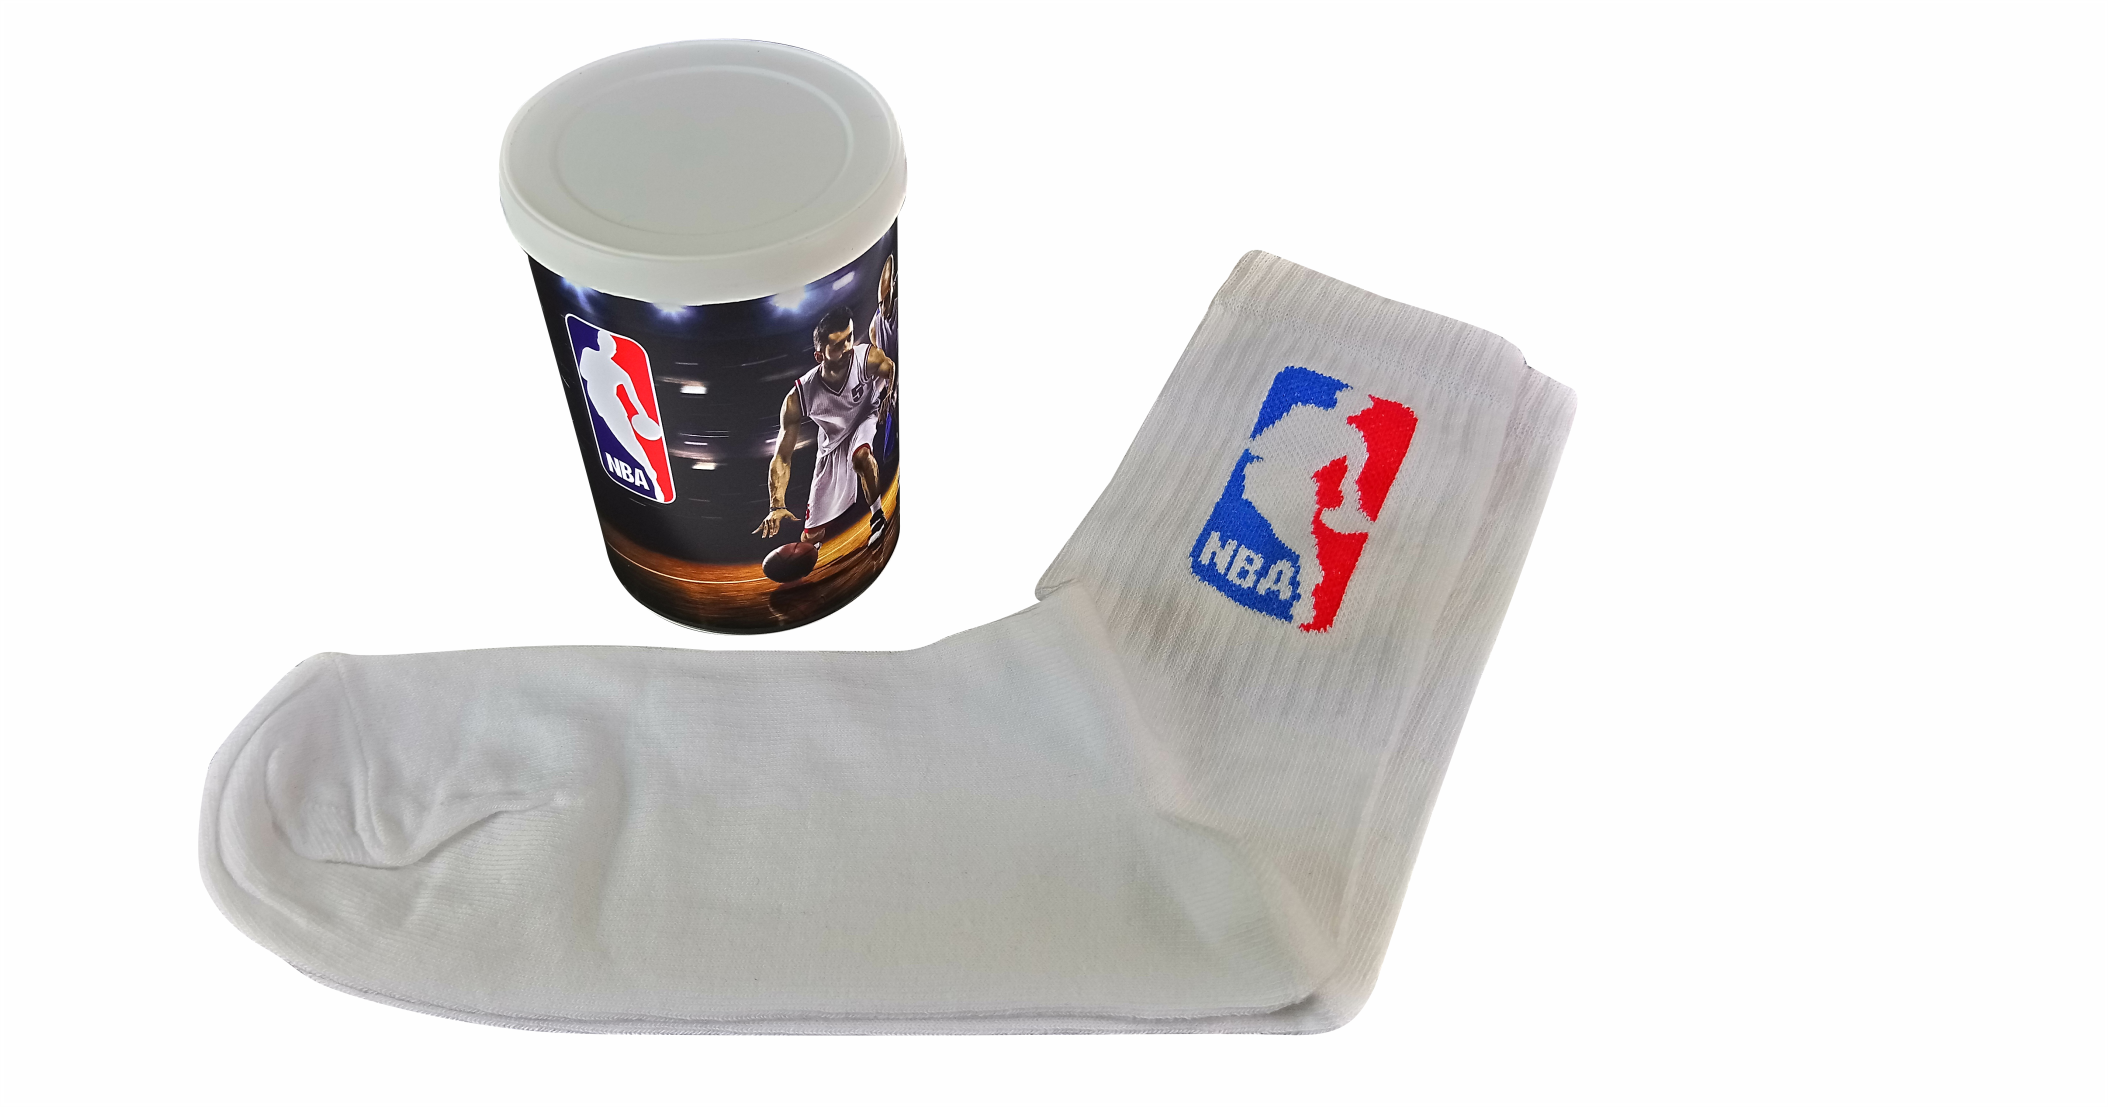 TIN PACKAGING Socks in tins with easy pu